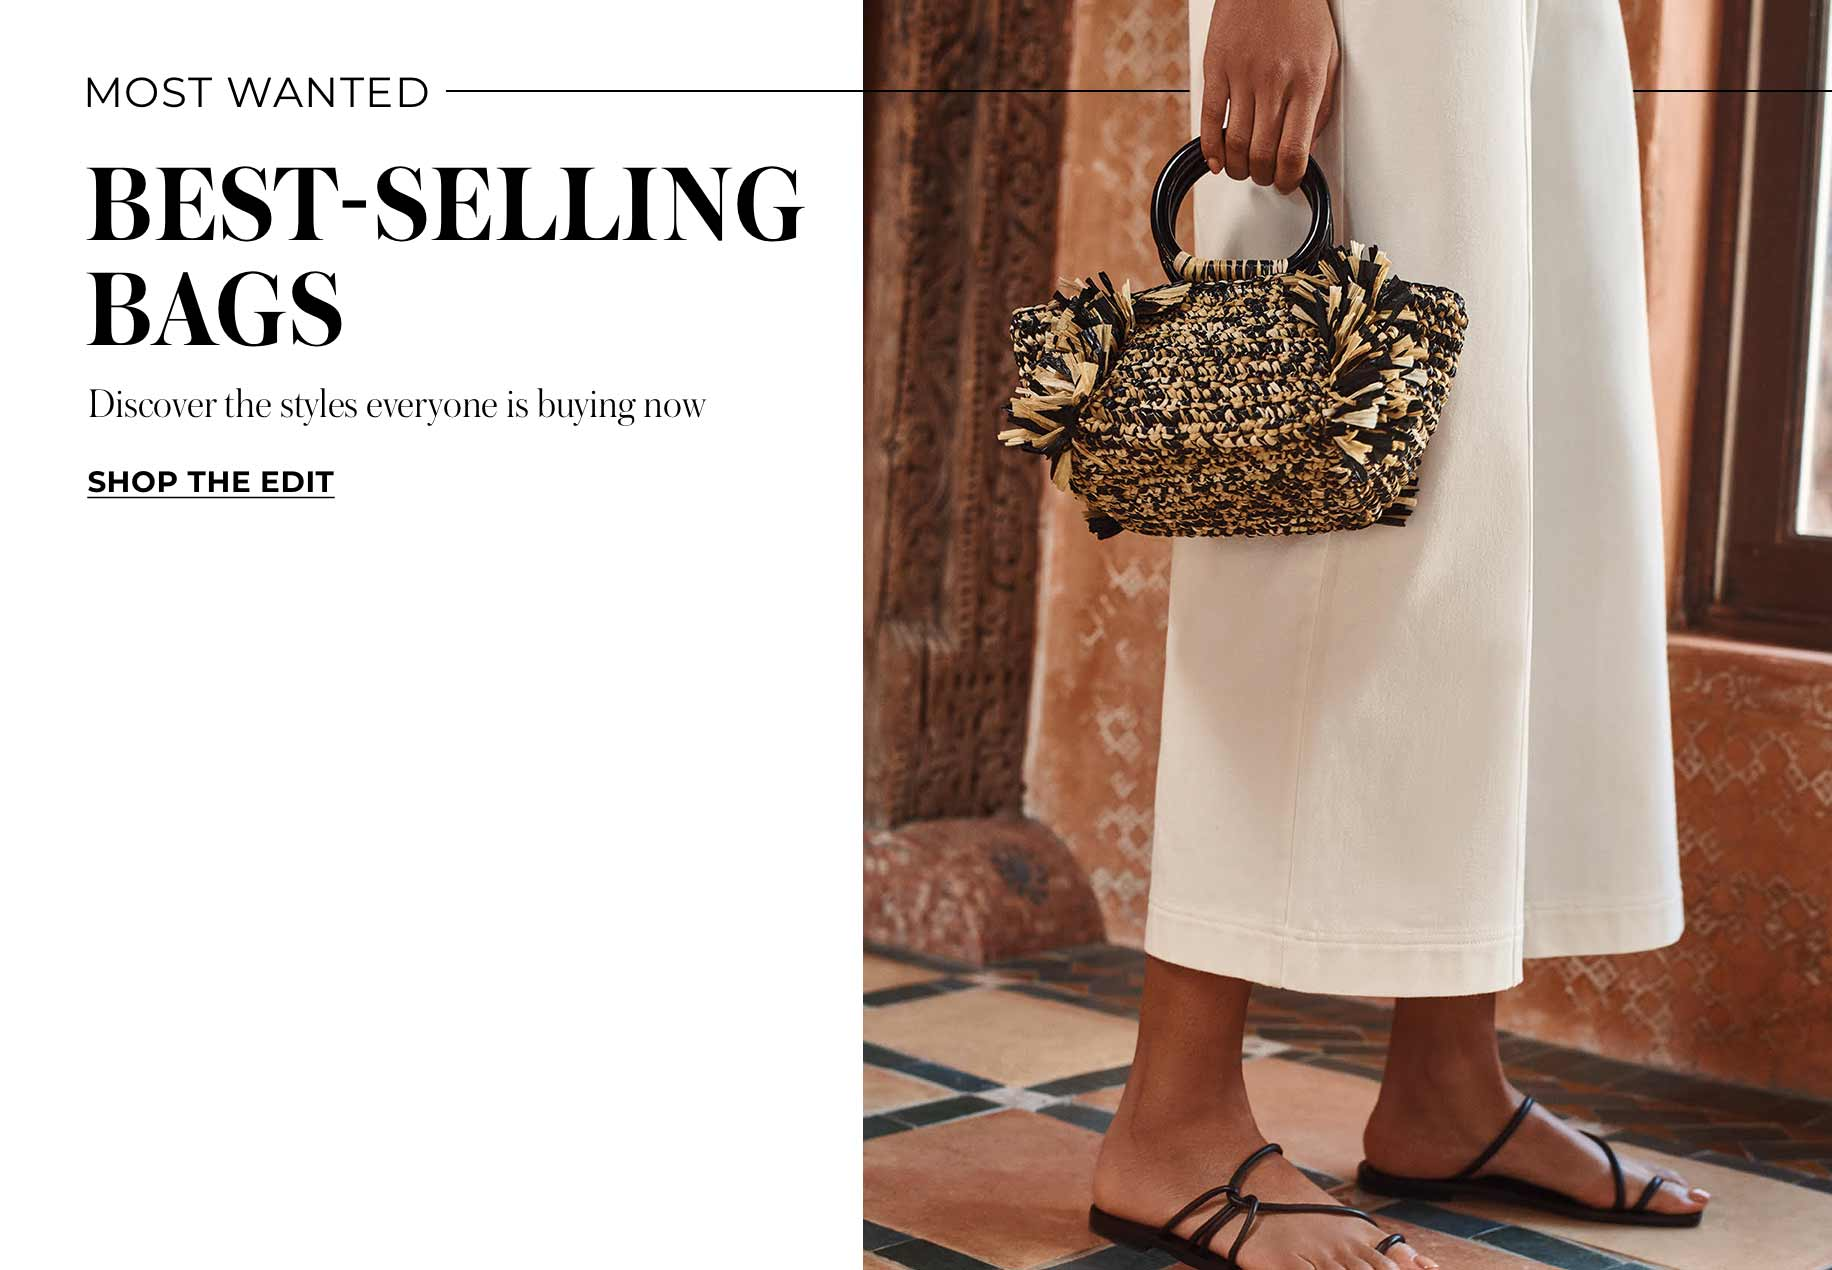 Most Wanted Best Selling Bags